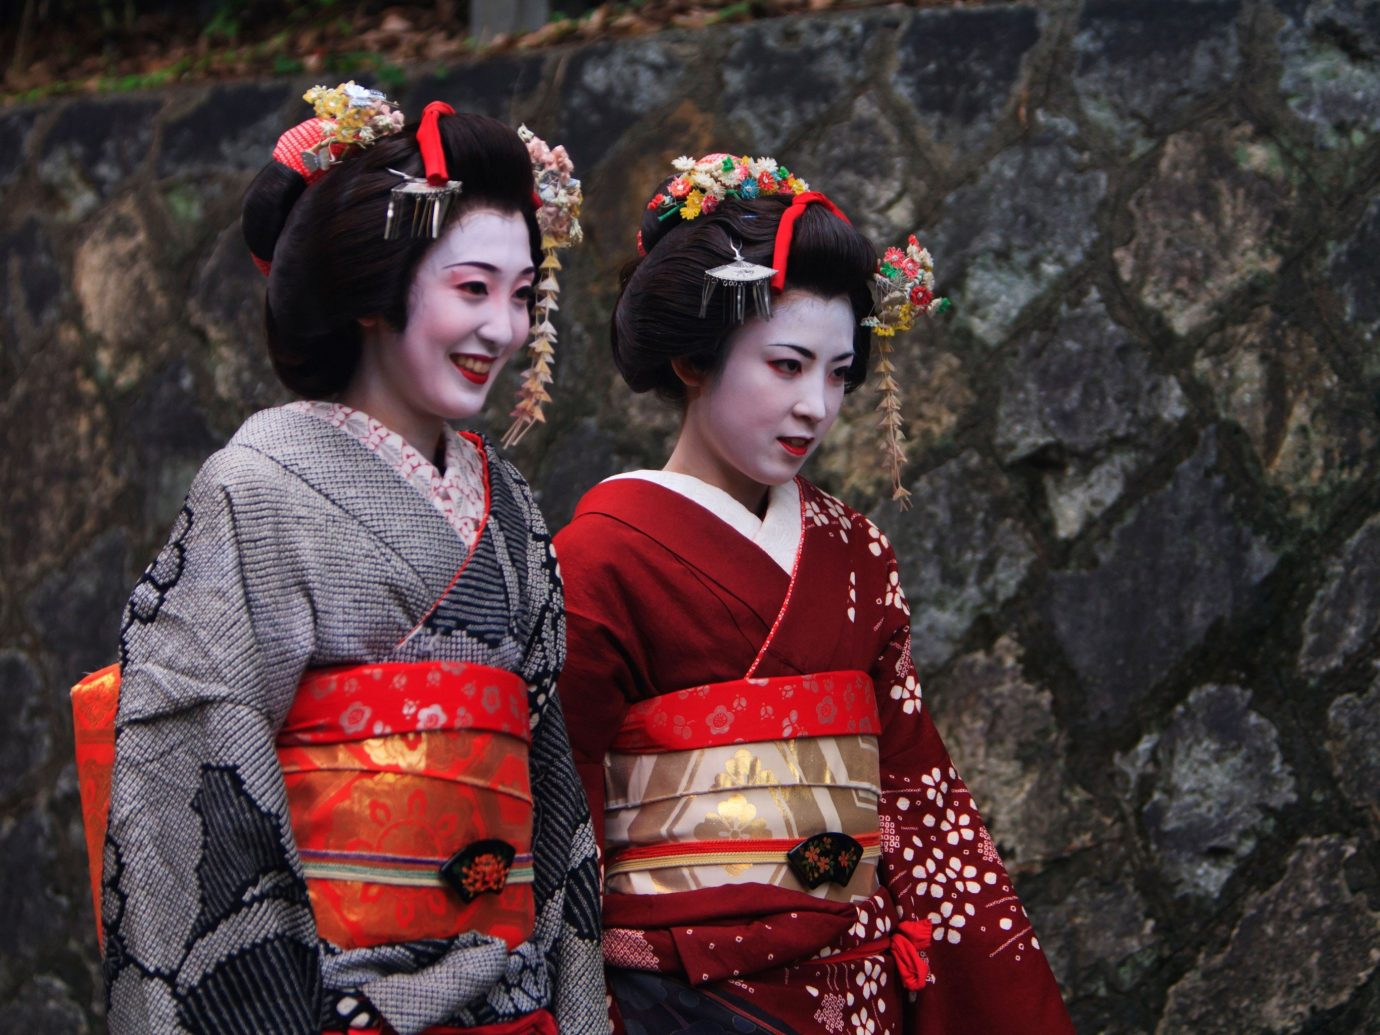 Trip Ideas person outdoor woman clothing red costume geisha tradition stone